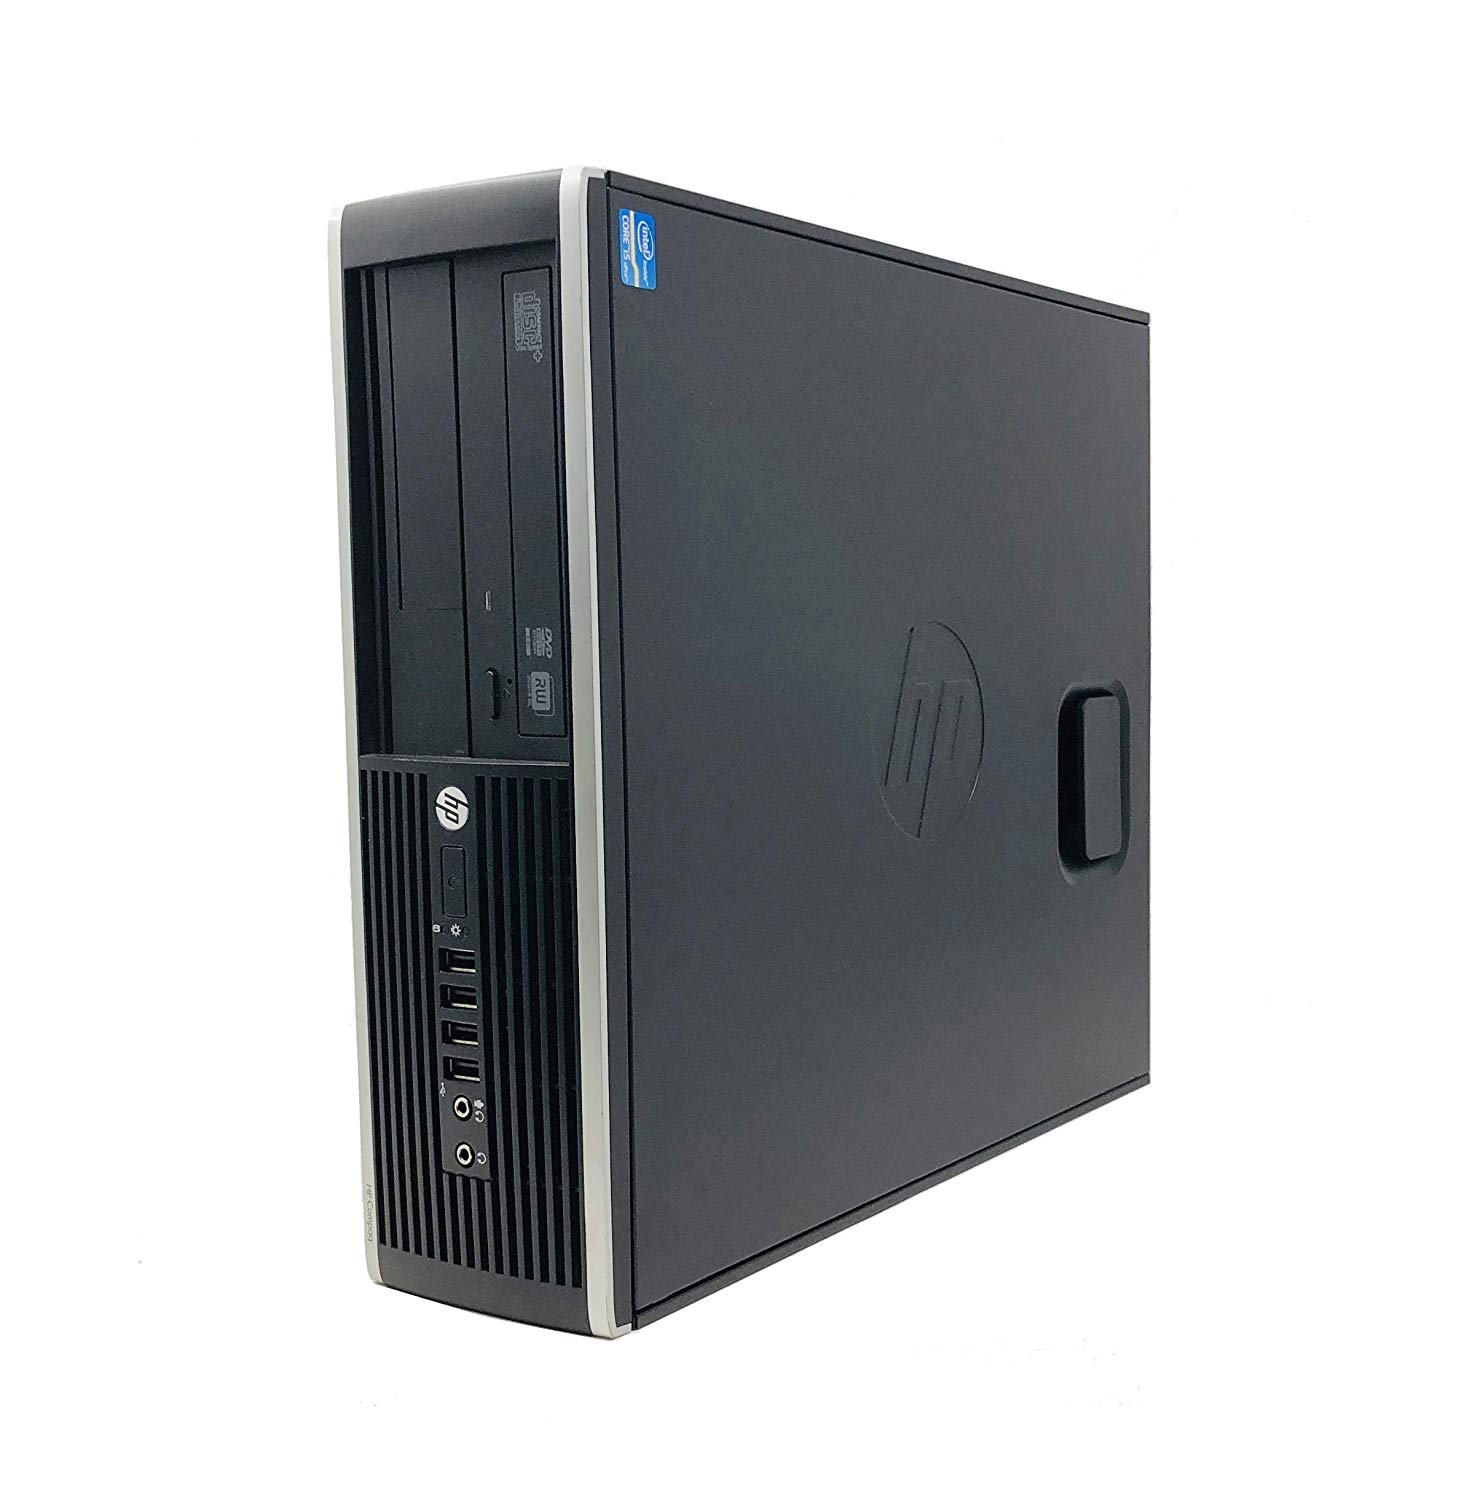 HP 8200 - Ordenador de sobremesa (<font><b>i5</b></font>-<font><b>2400</b></font>, 8GB RAM, HDD 250GB, DVD, Windows 10 PRO) - Negro (Reacondicionado) image